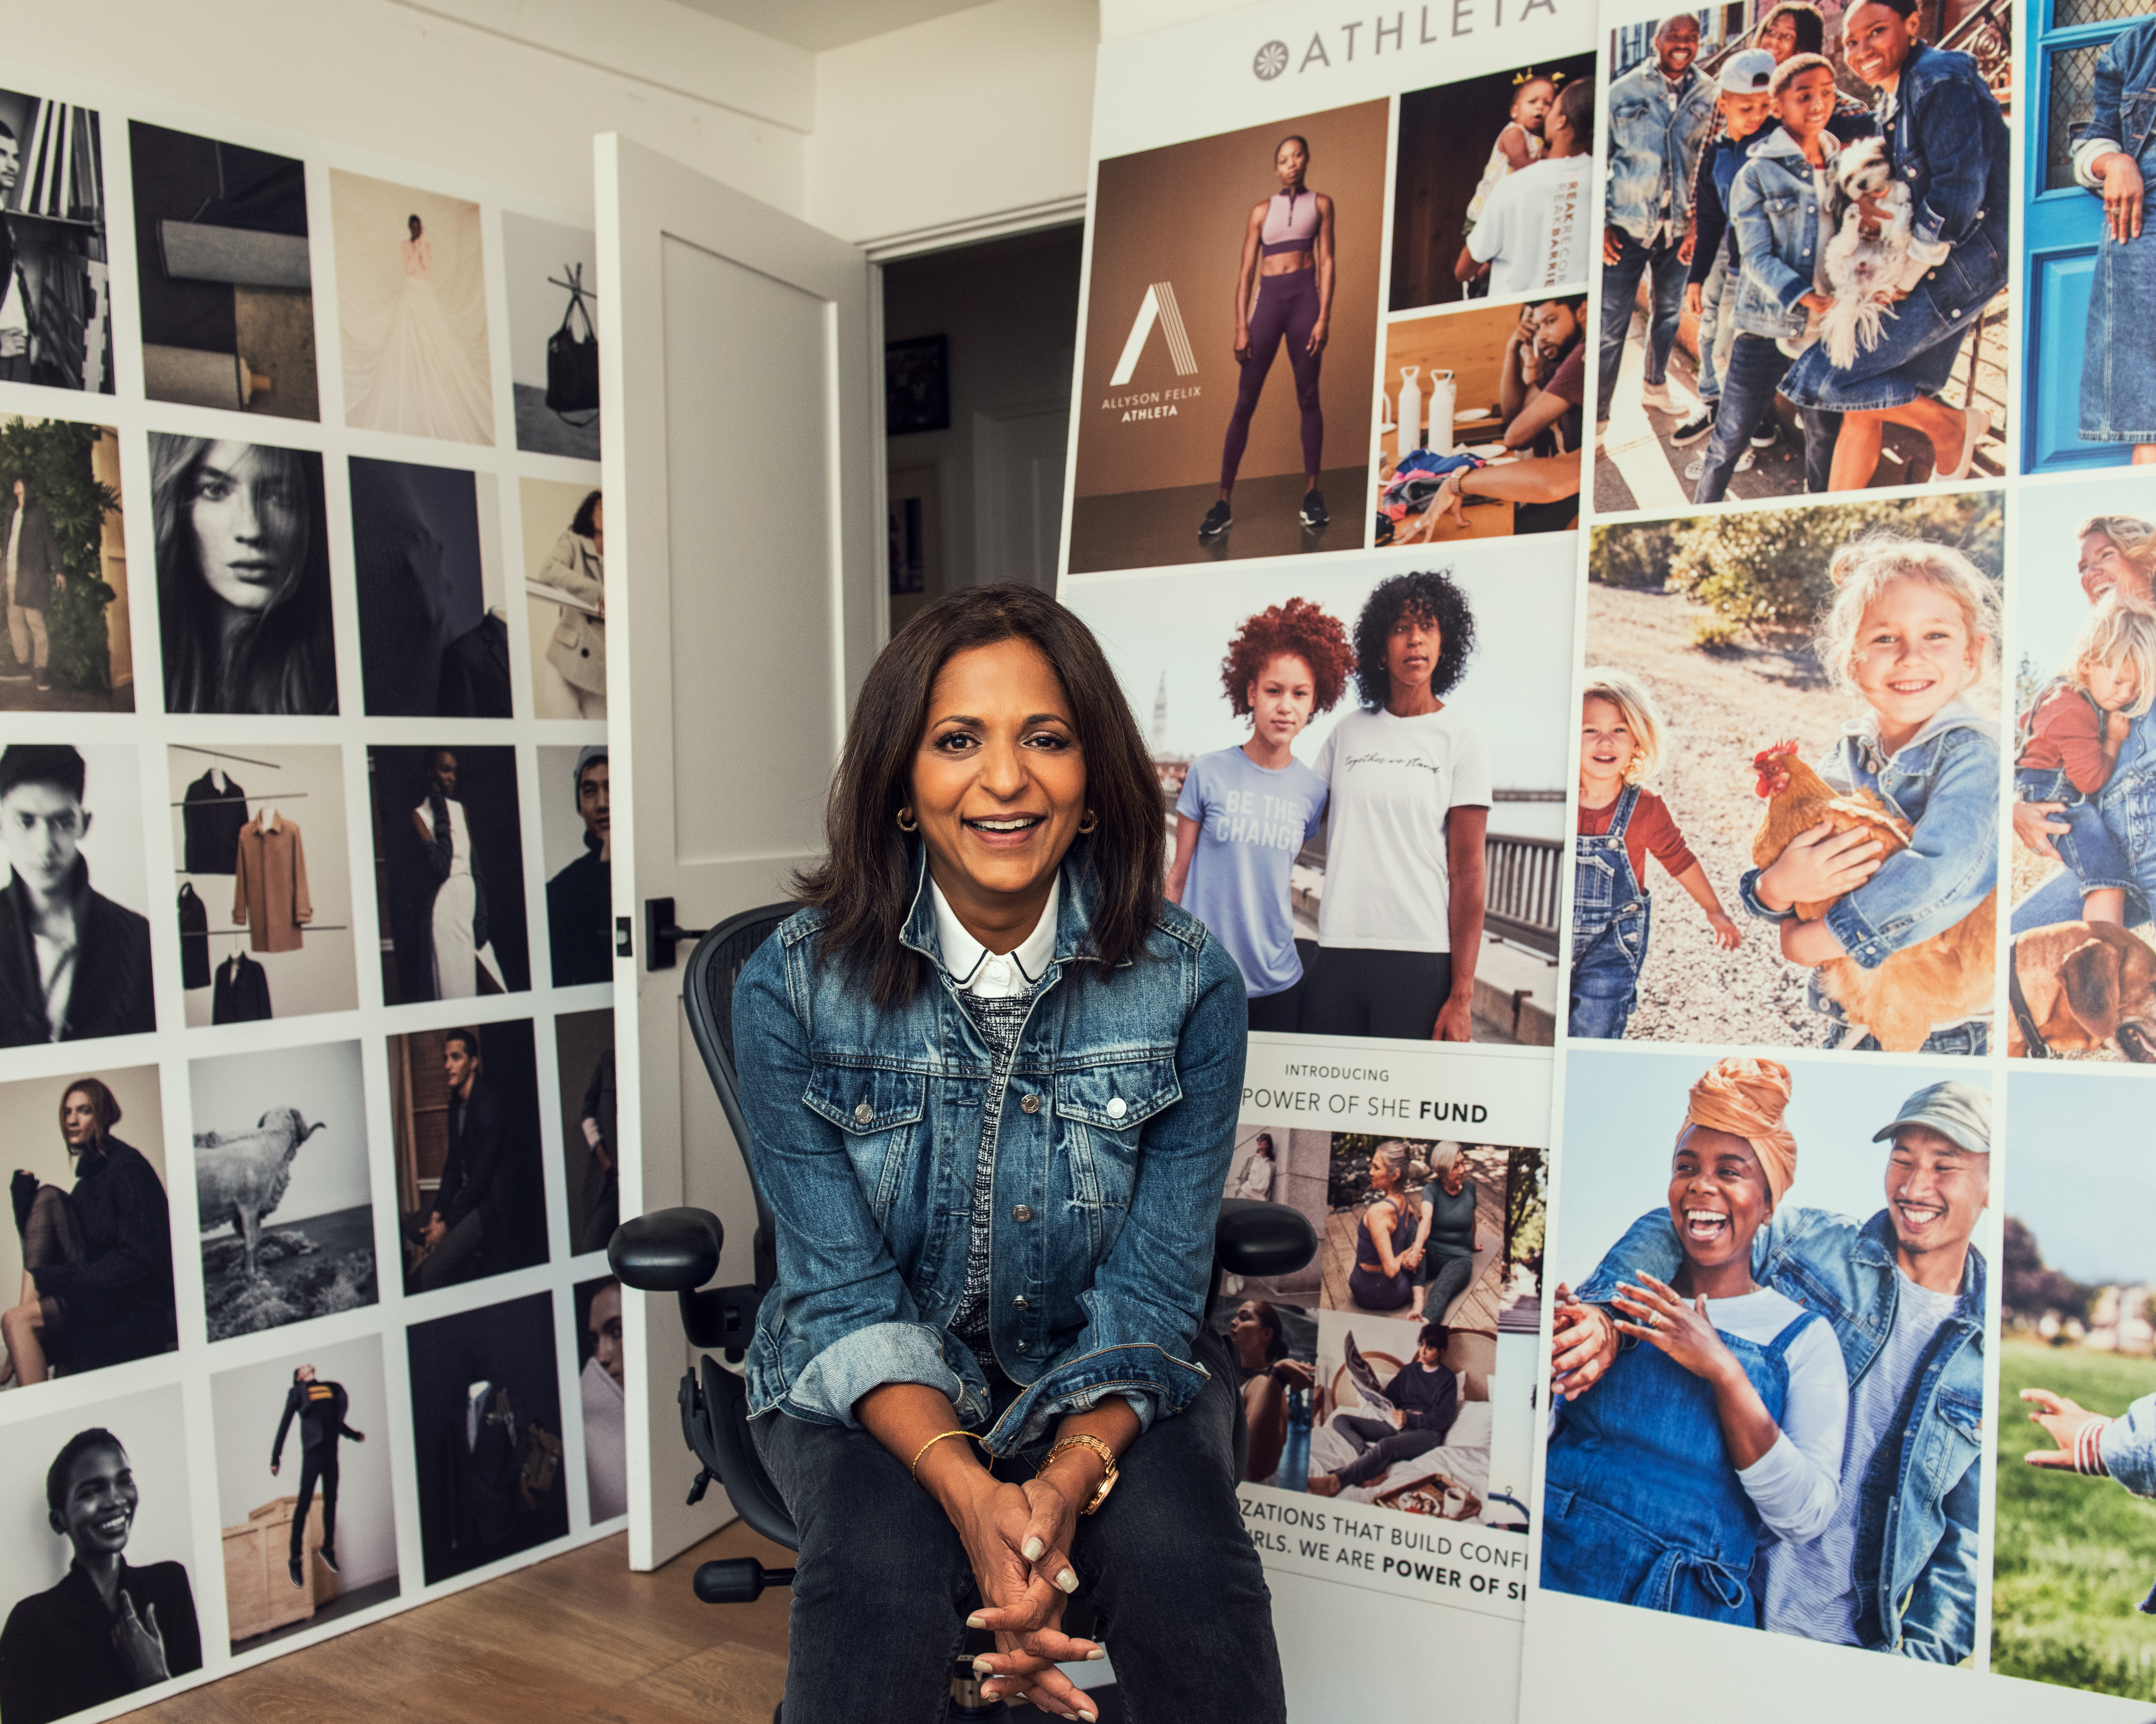 Sonia Syngal, chief executive officer, Gap Inc.